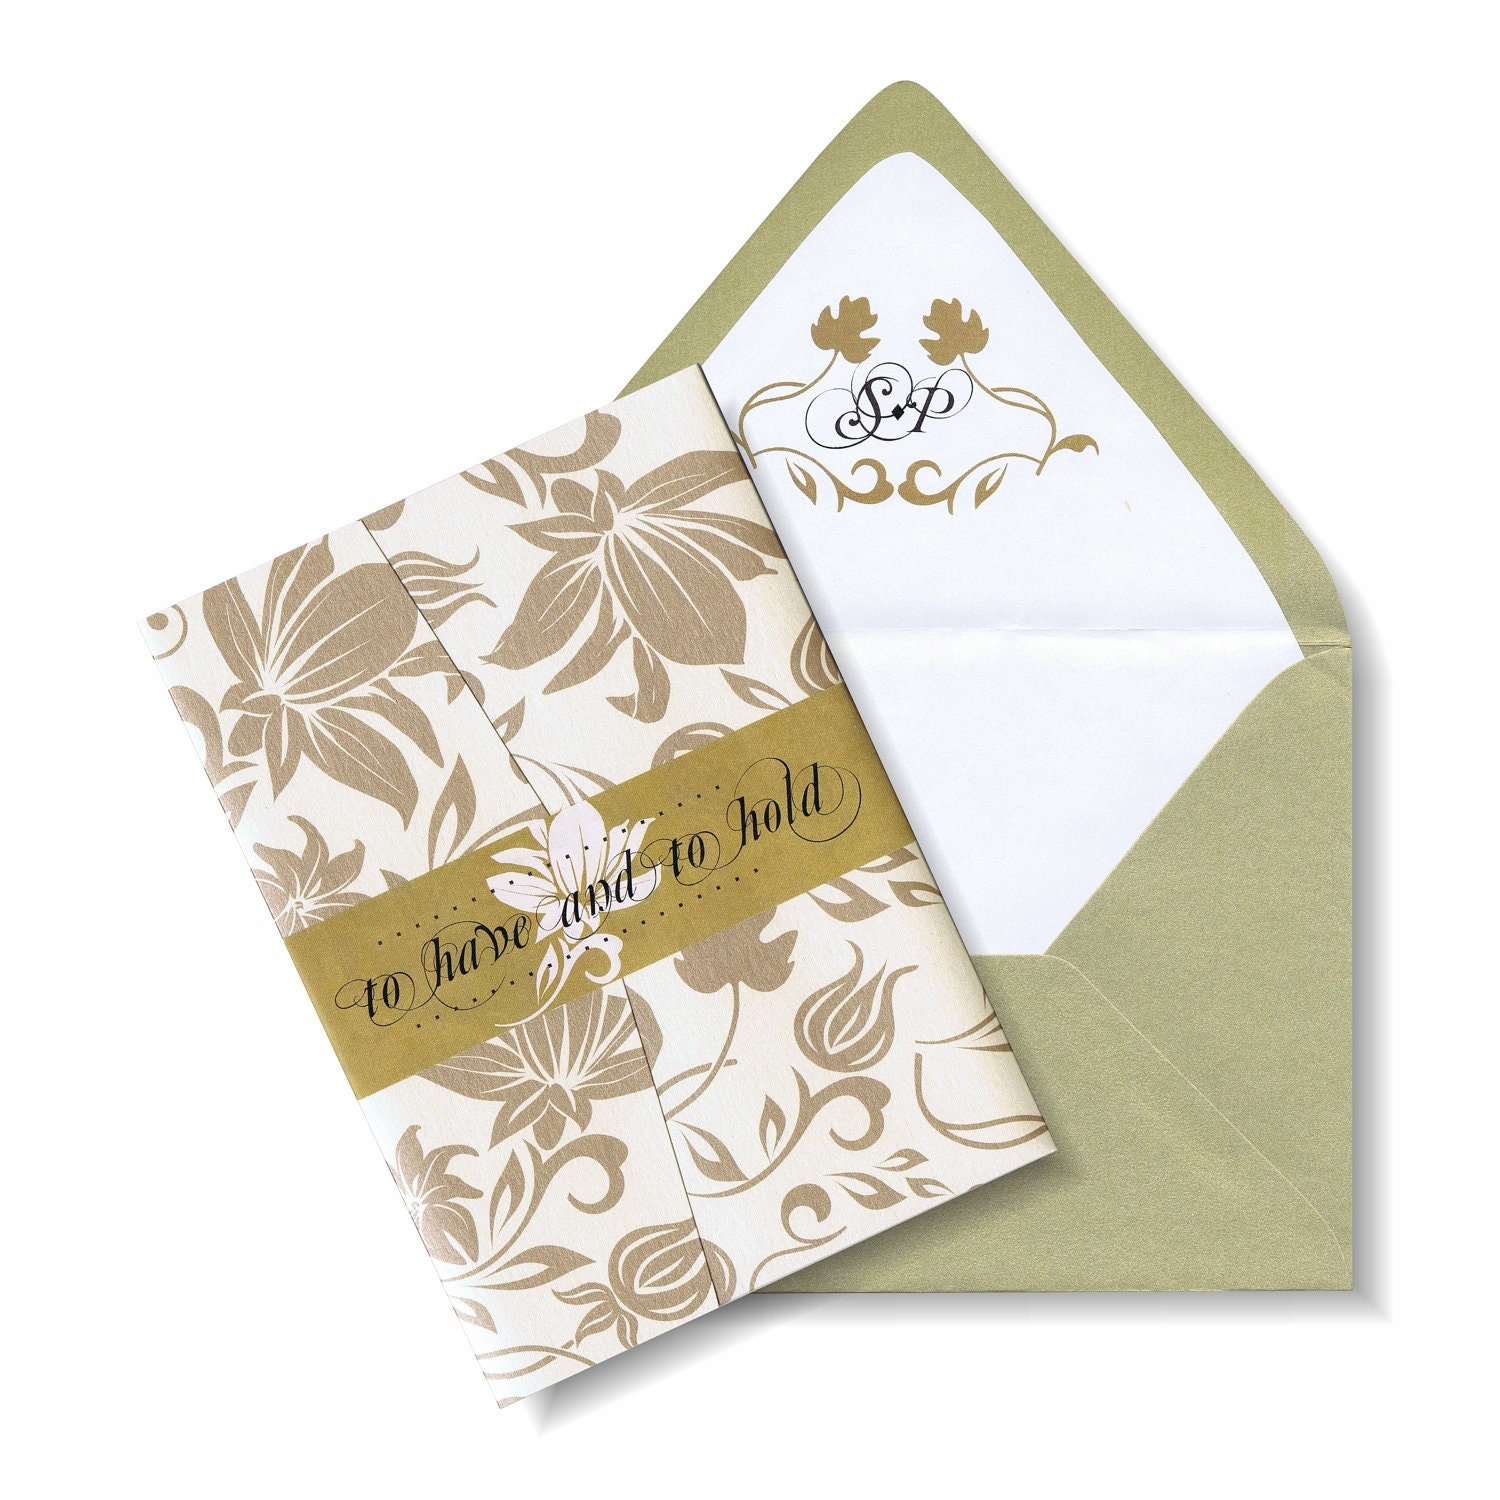 High End Wedding Invitations was very inspiring ideas you may choose for invitation ideas